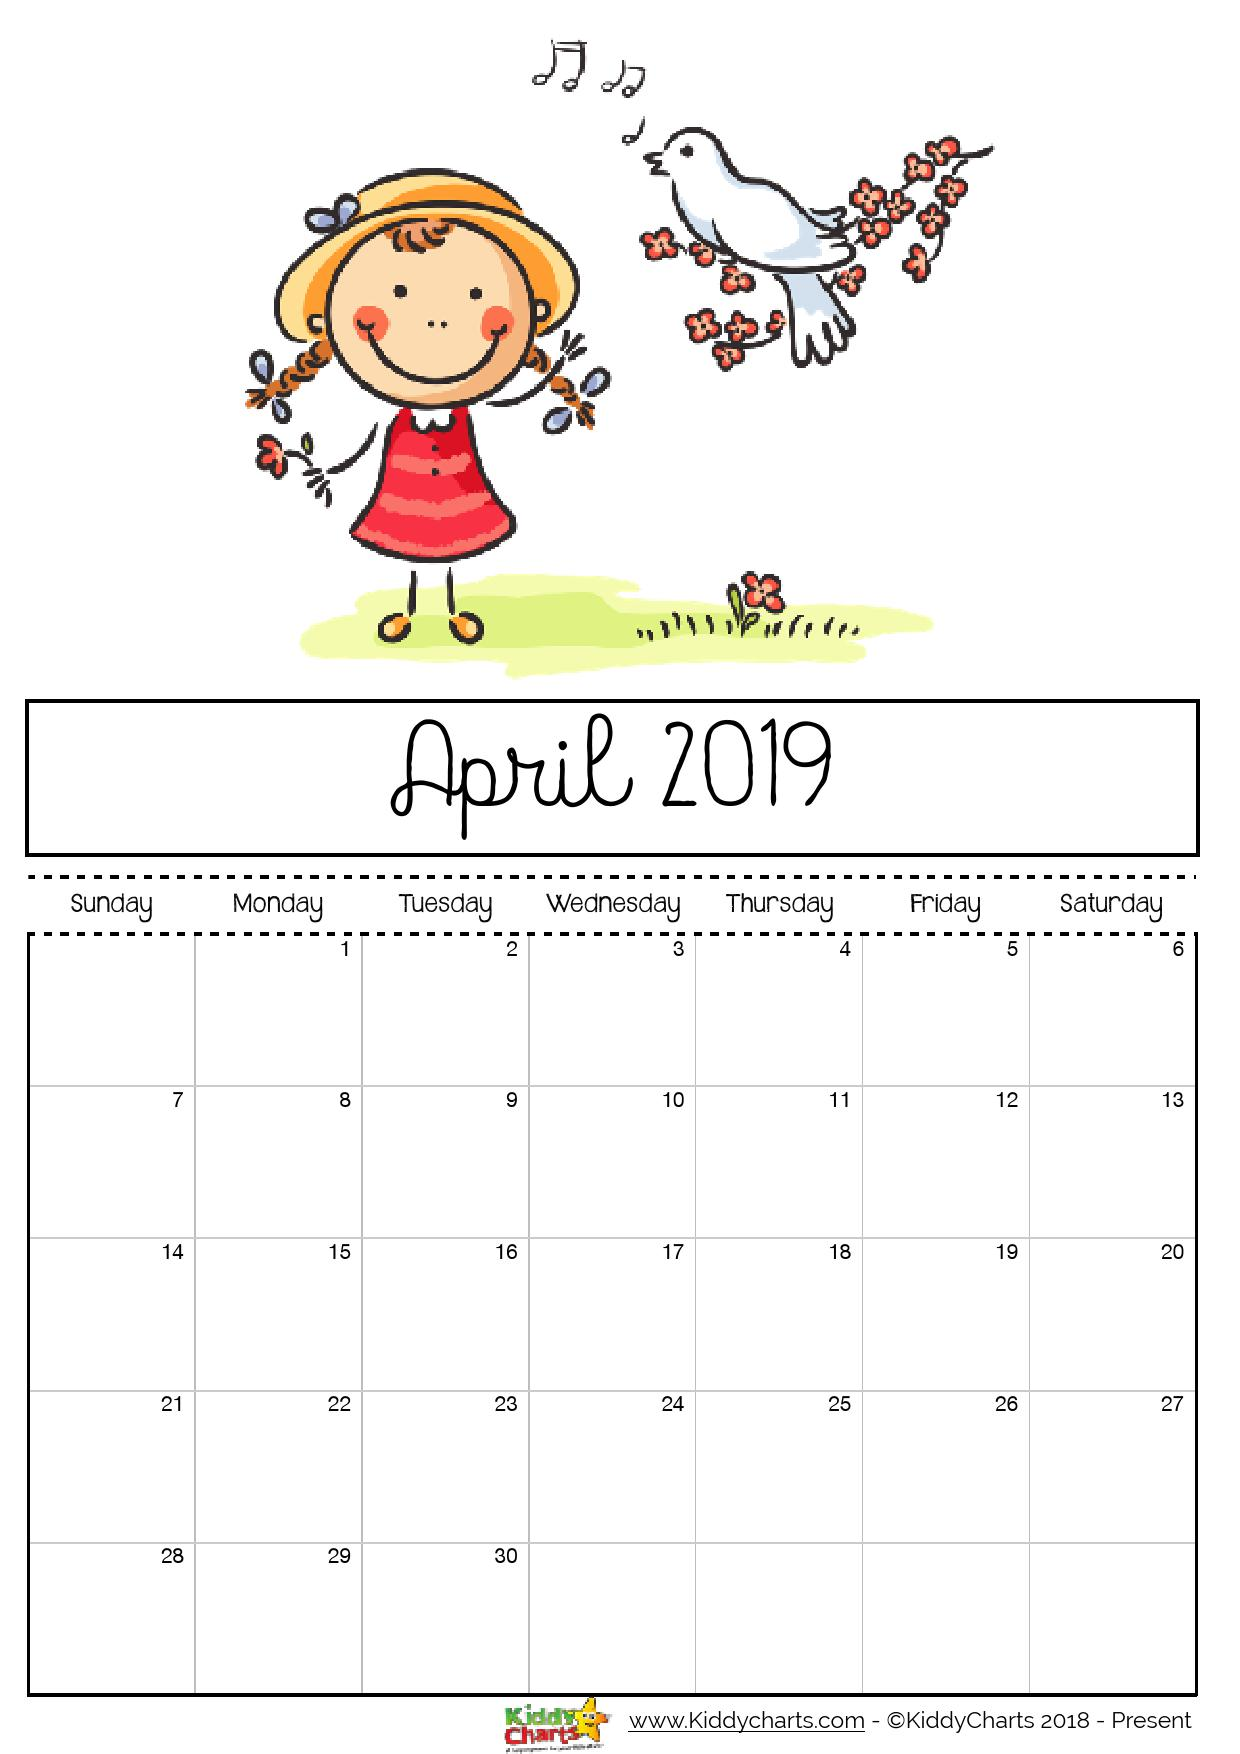 April printable 2019 calendar sheet - dove singing to a little girl. Cute isn't it? #Printable #2019calendar #kidsprintables